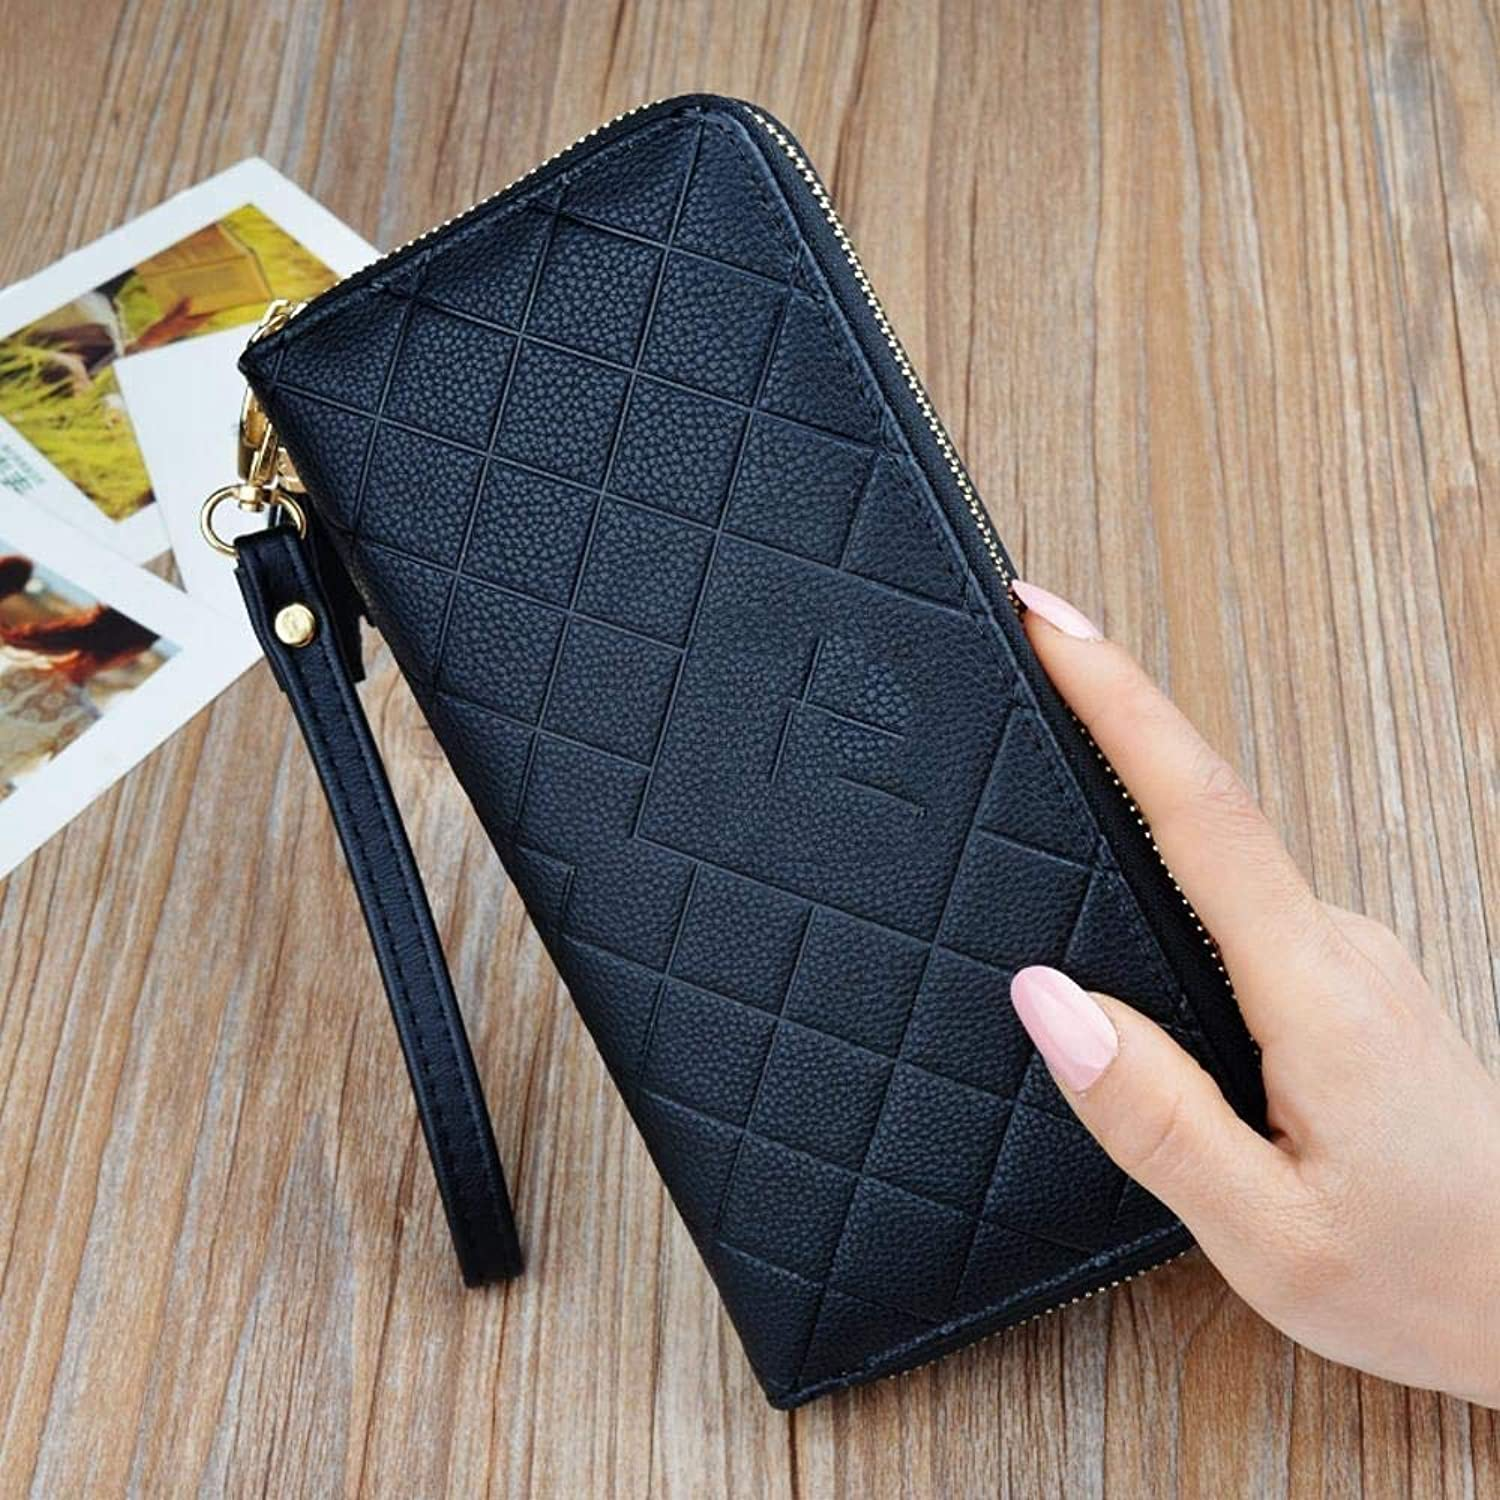 Girls Purse Women's Wallet,Ladies Hand Purse LargeFunction Package Student Wallet Zipper Mobile Phone Bag (color   F)